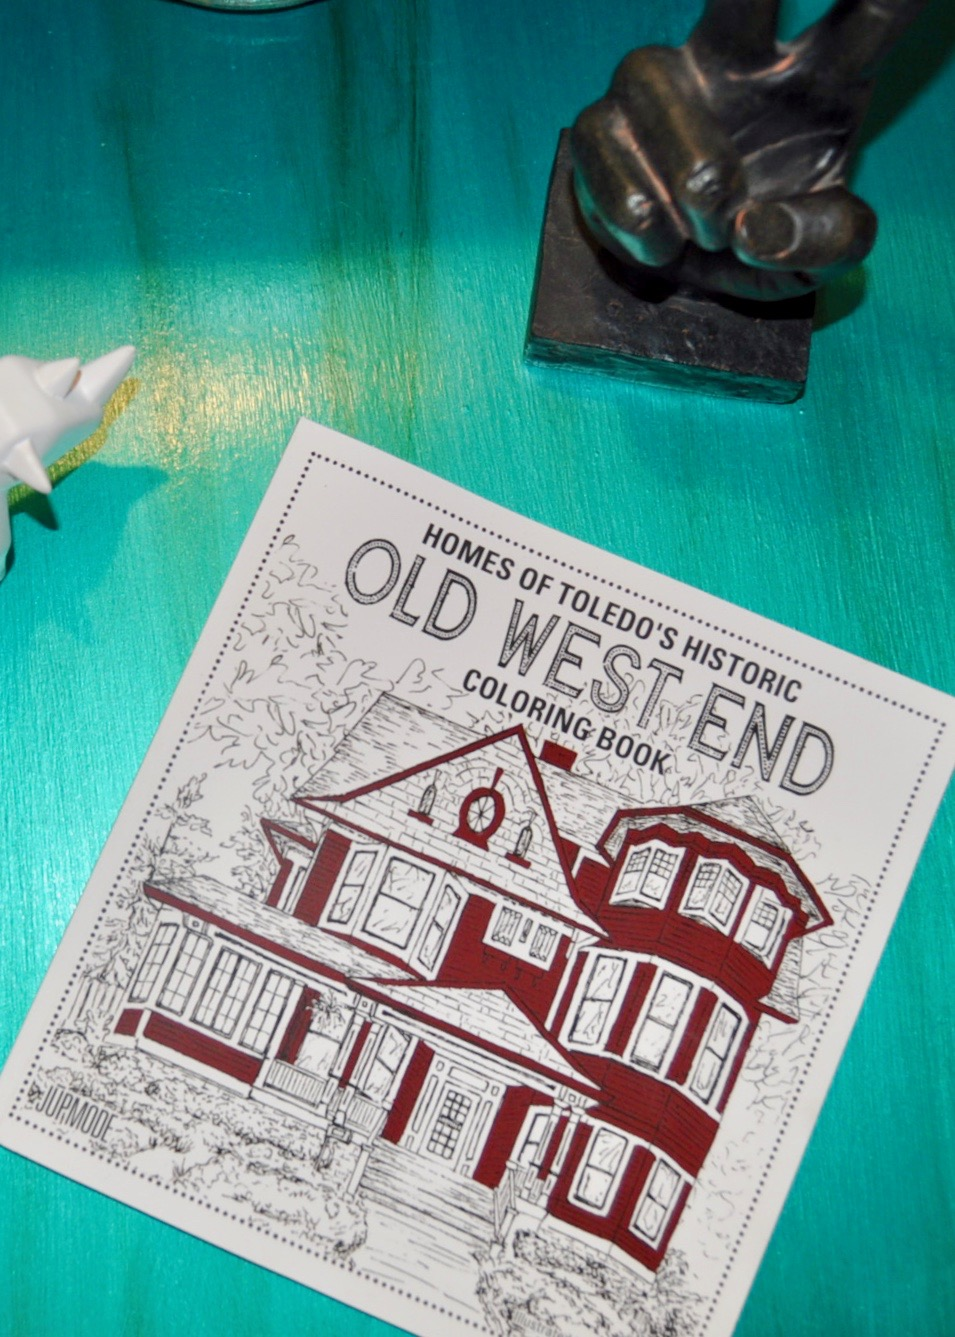 Tour this Victorian-style property built in the late 1800s located in Toledo's Historic Old West End | Building Bluebird #owe #oldhouses #historichome #preservation